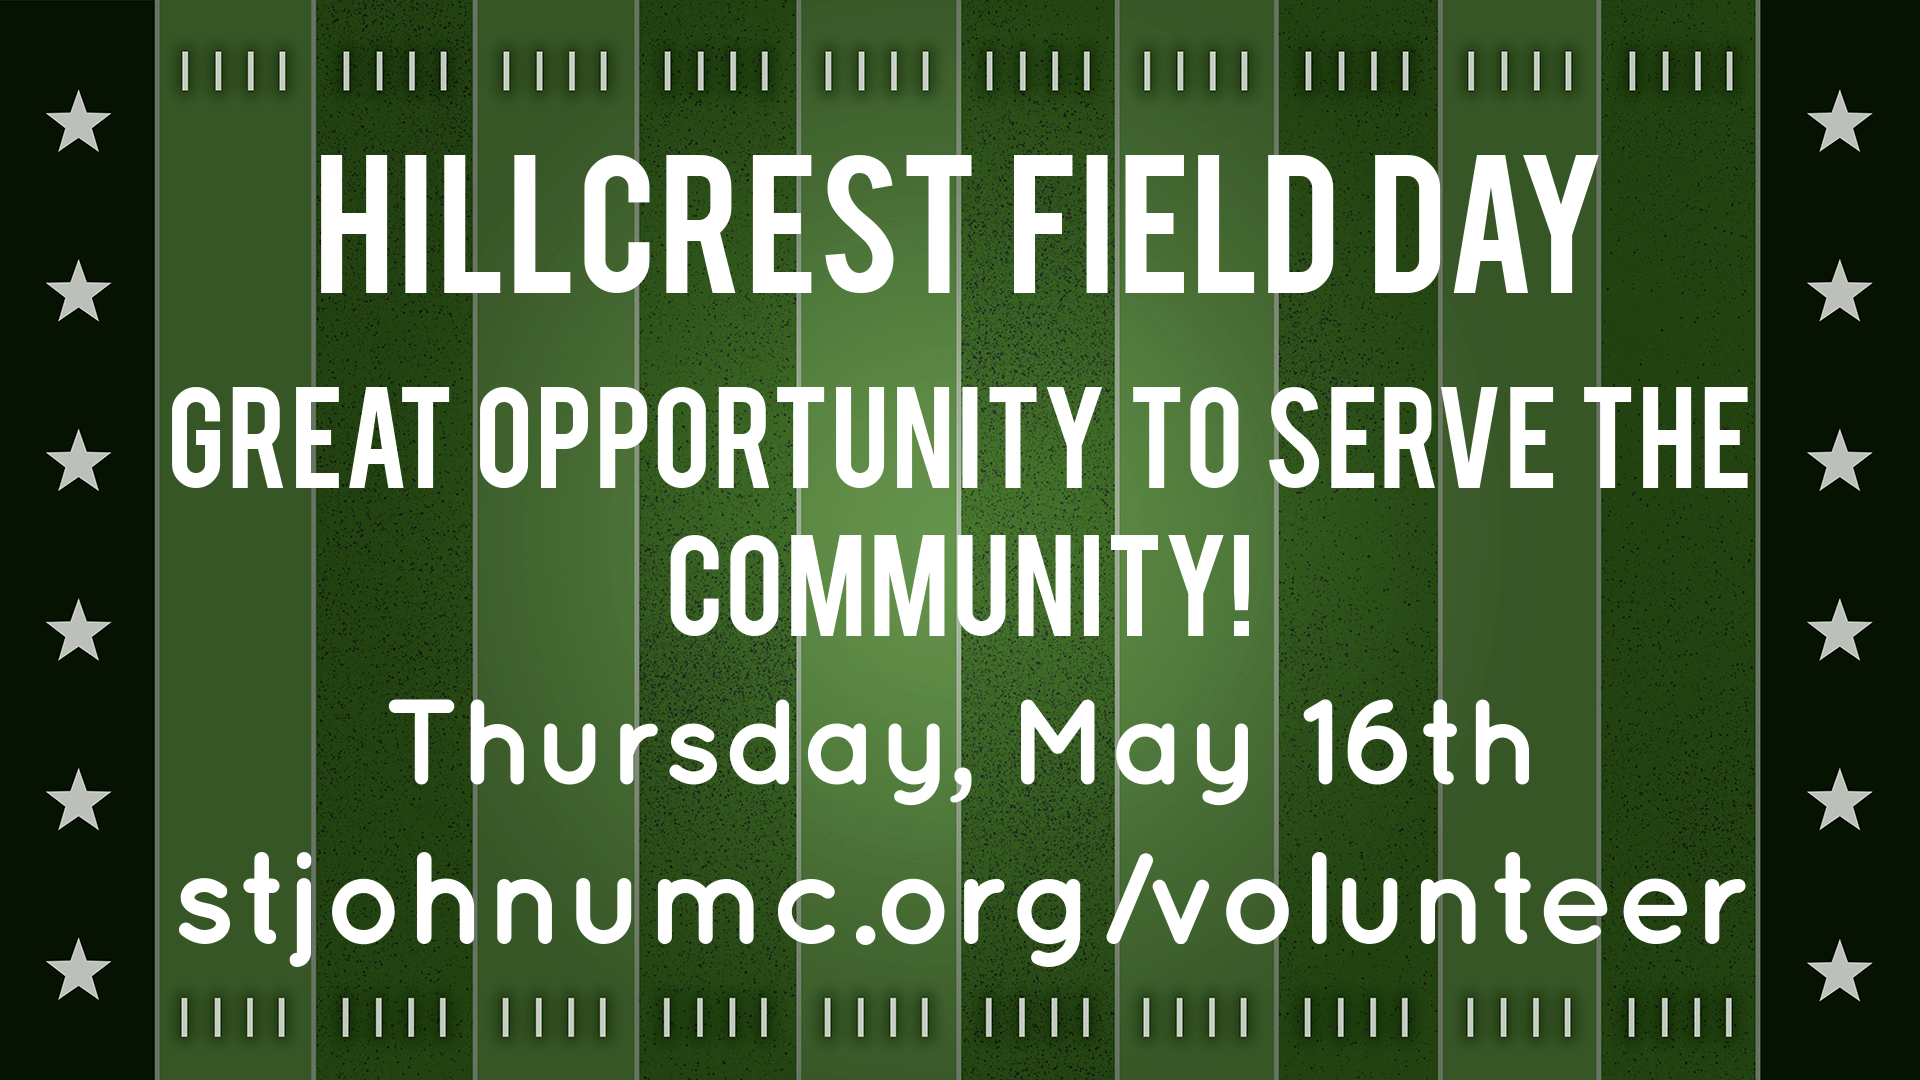 Hillcrest Field Day